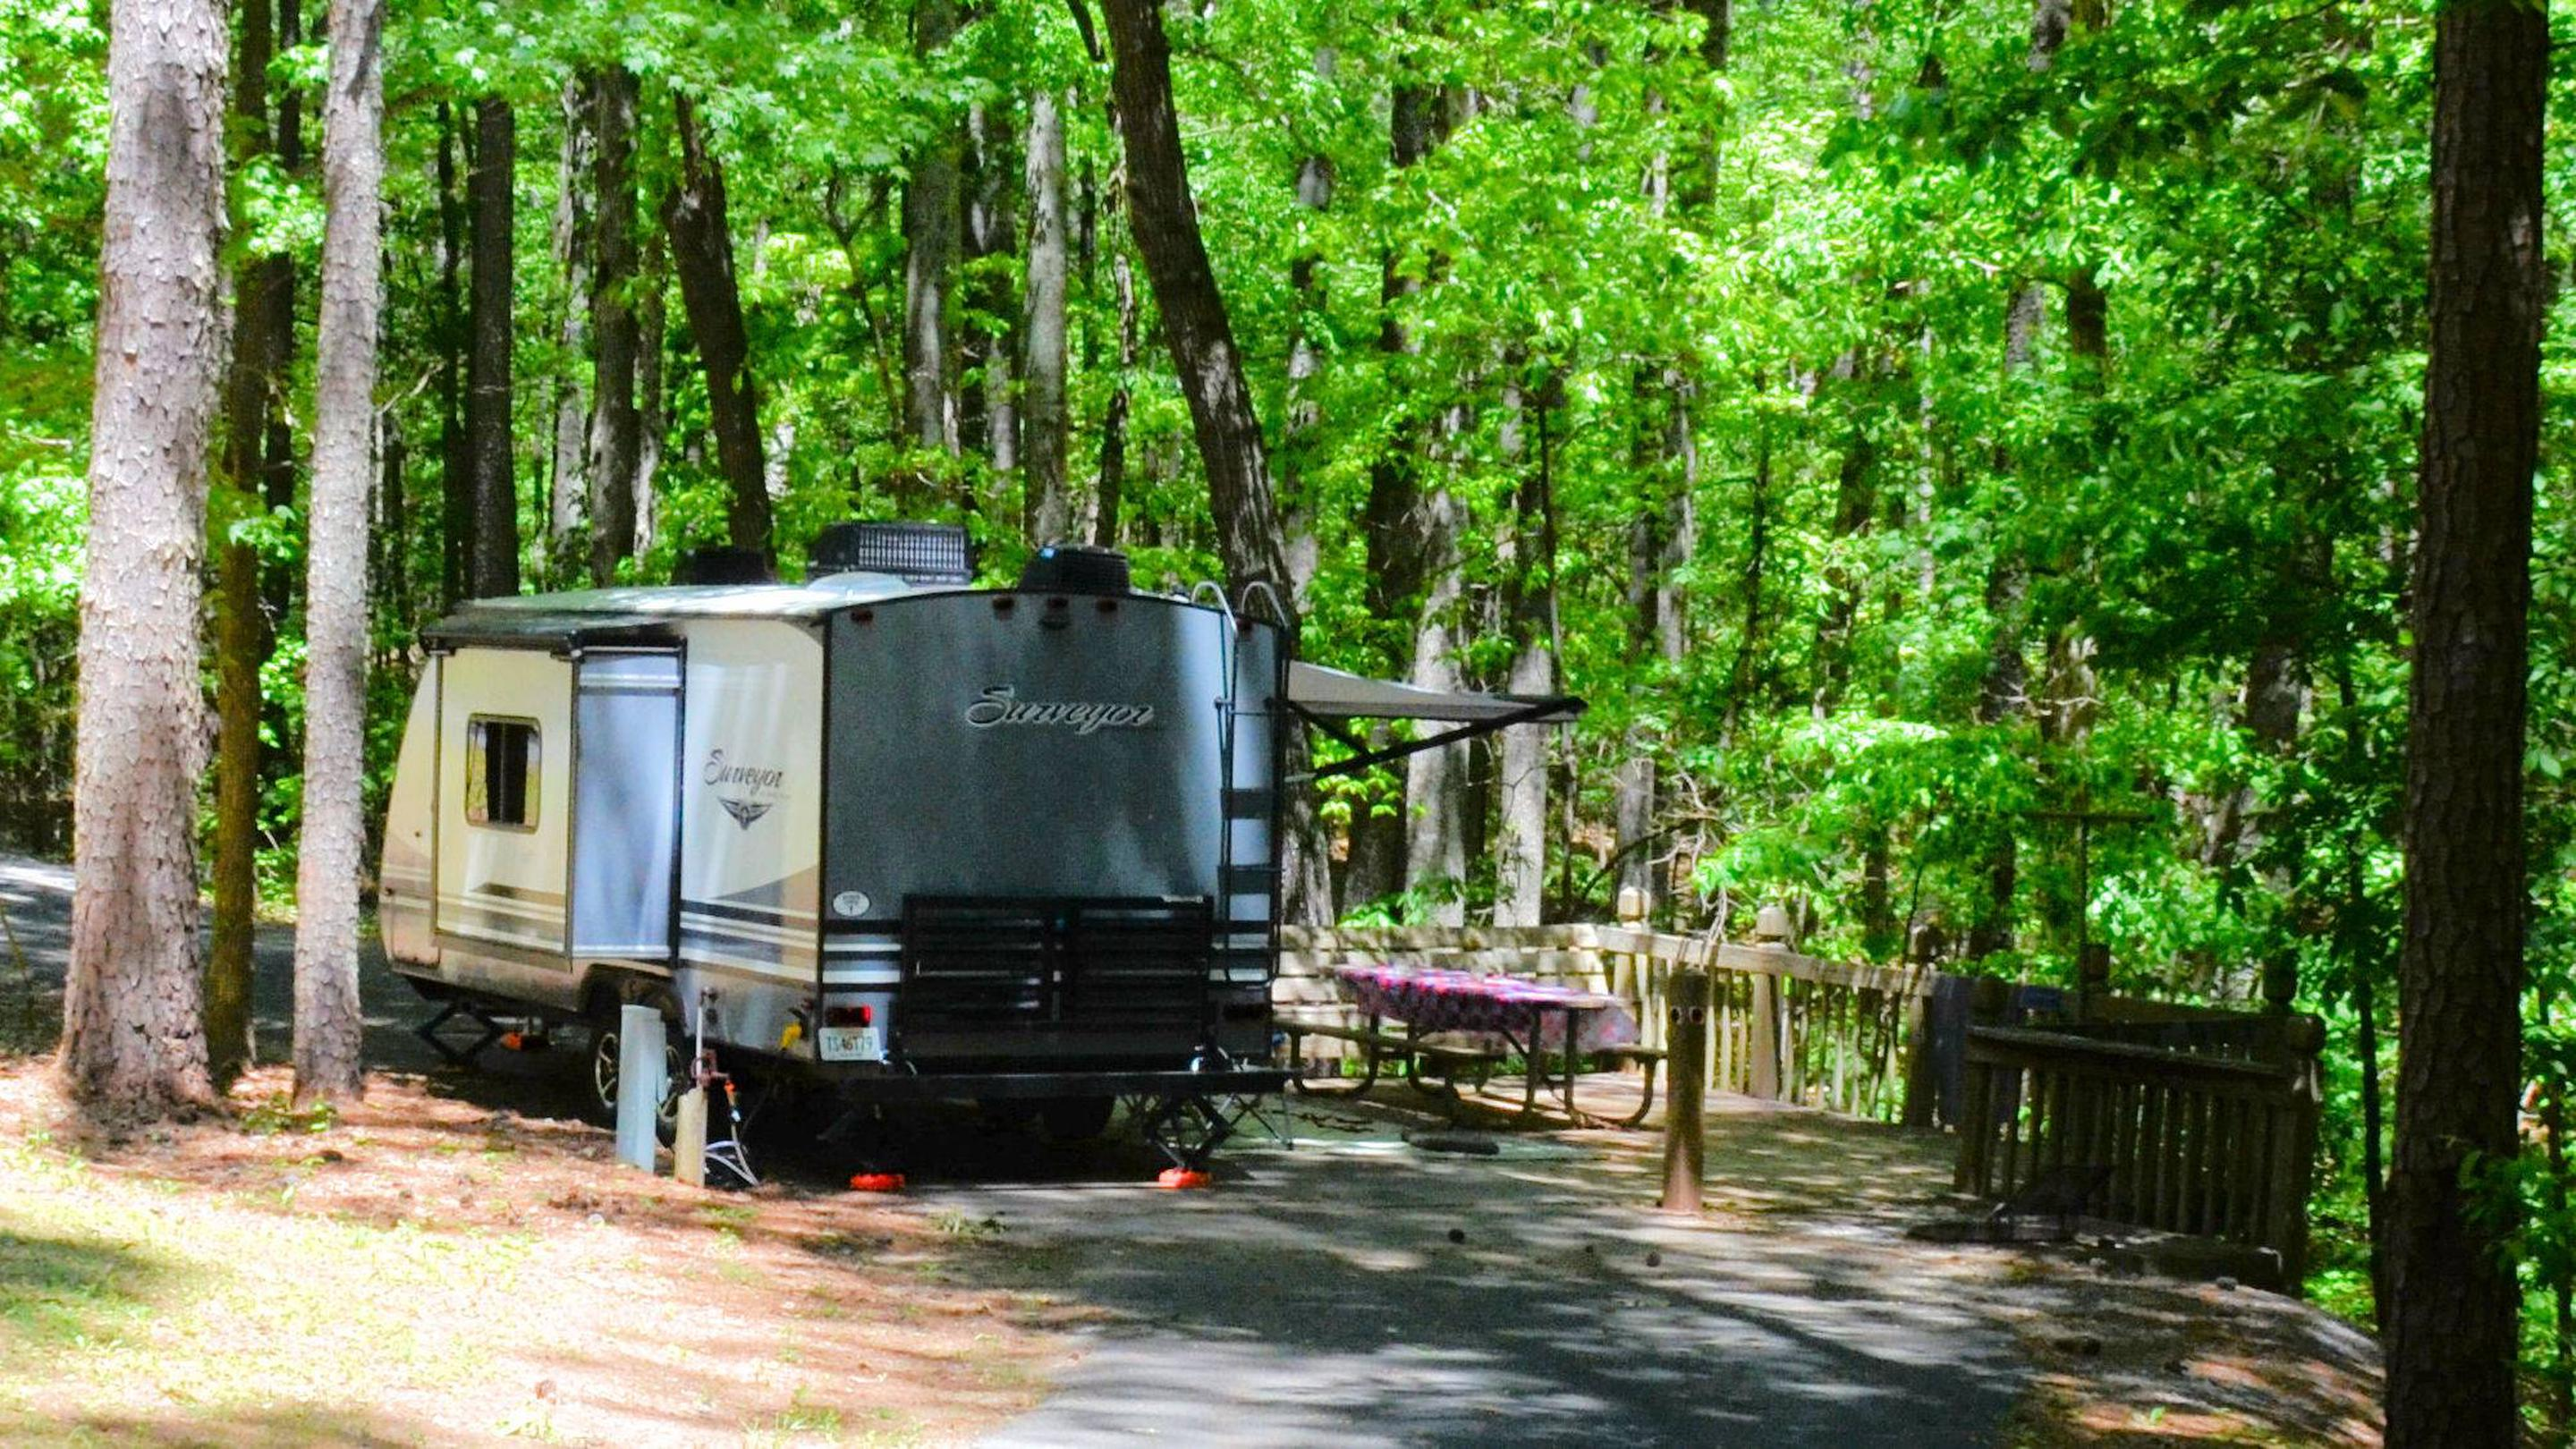 Campsite view, utilities-side clearance.McKinney Campground, campsite 138.